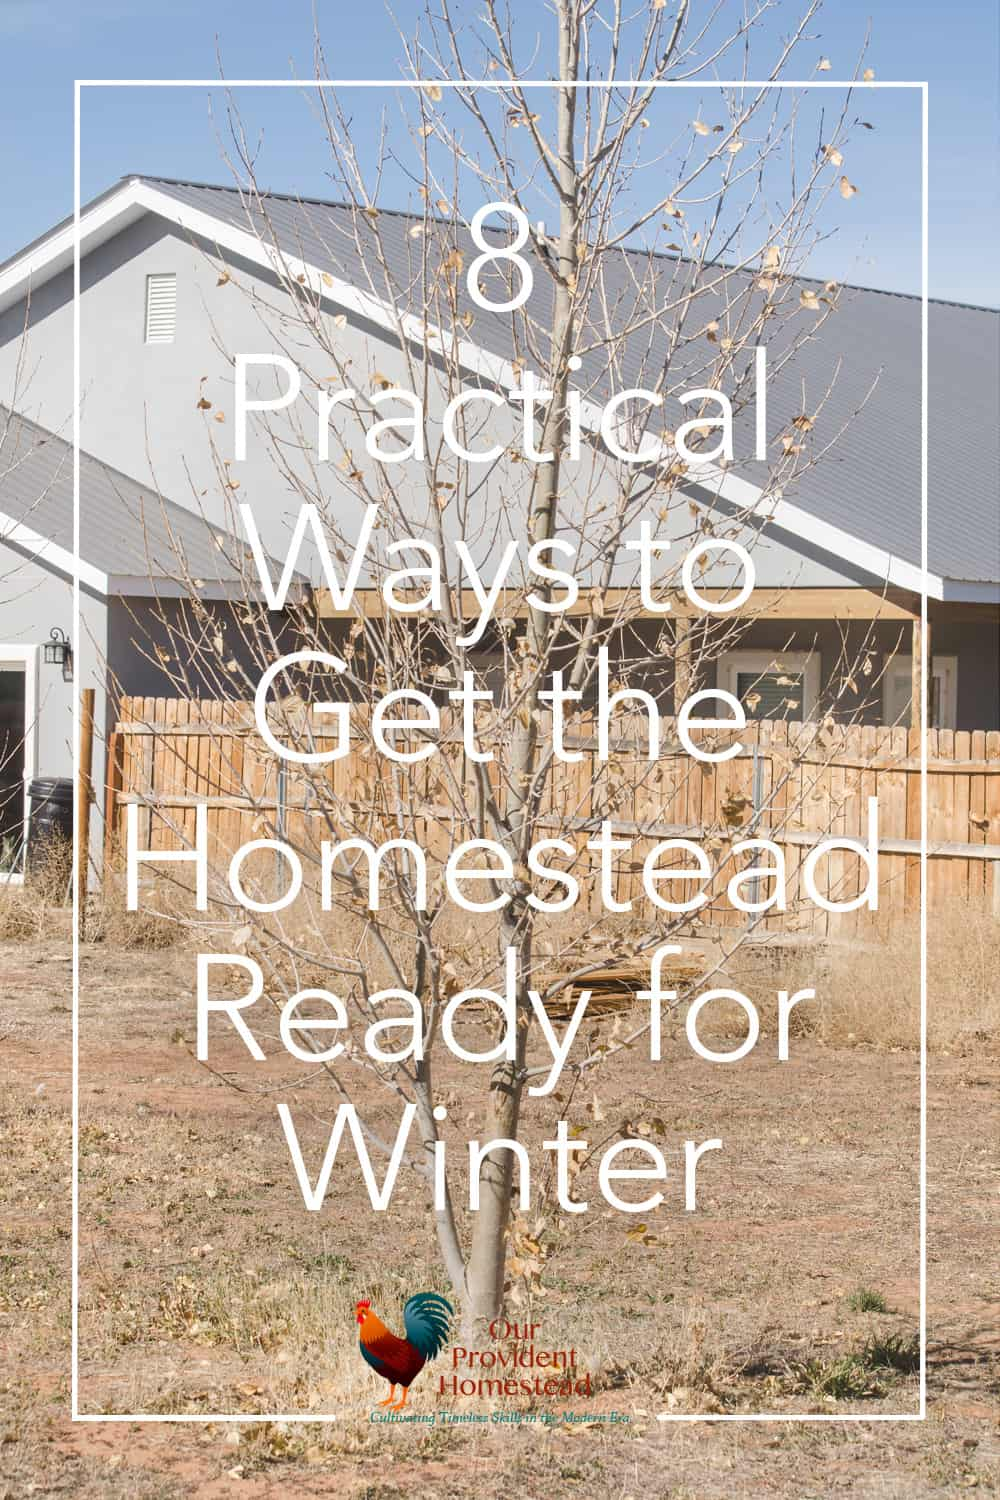 Are you prepared for winter? Click here for 8 practical ways to get your homestead ready for winter so you won't be caught unaware. #homesteading #prepareforwinter #preparedness